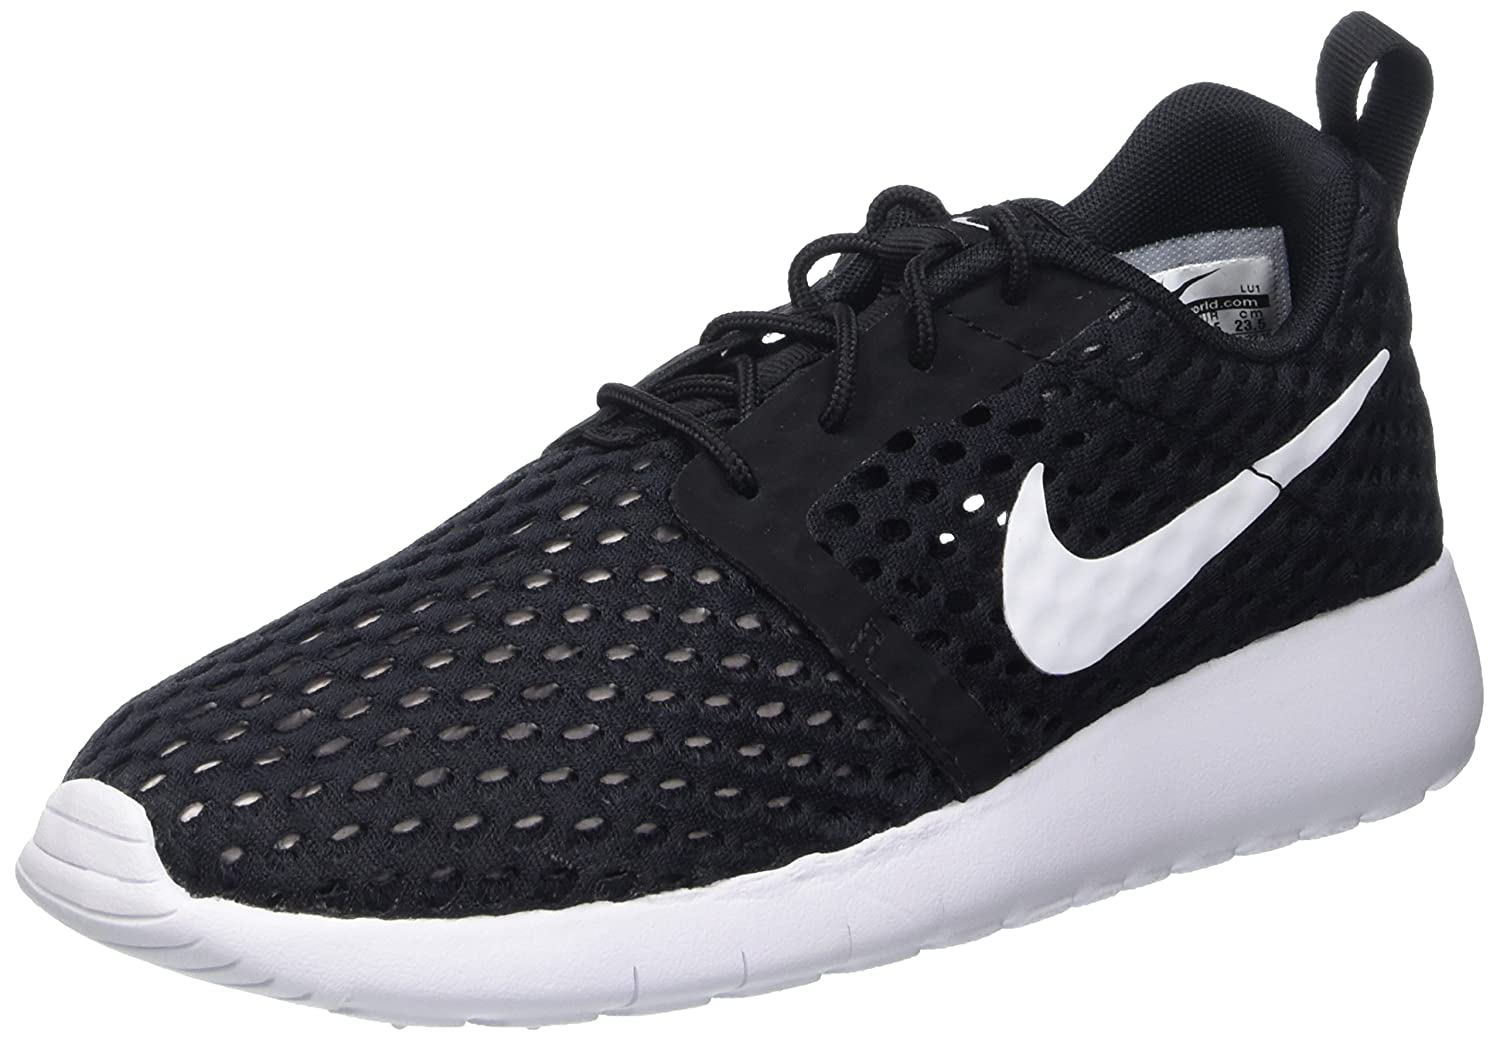 NIKE Roshe One Flight Weight (GS) Youth Sneaker B01FFQ2JXY 6.5 M US|Black-white